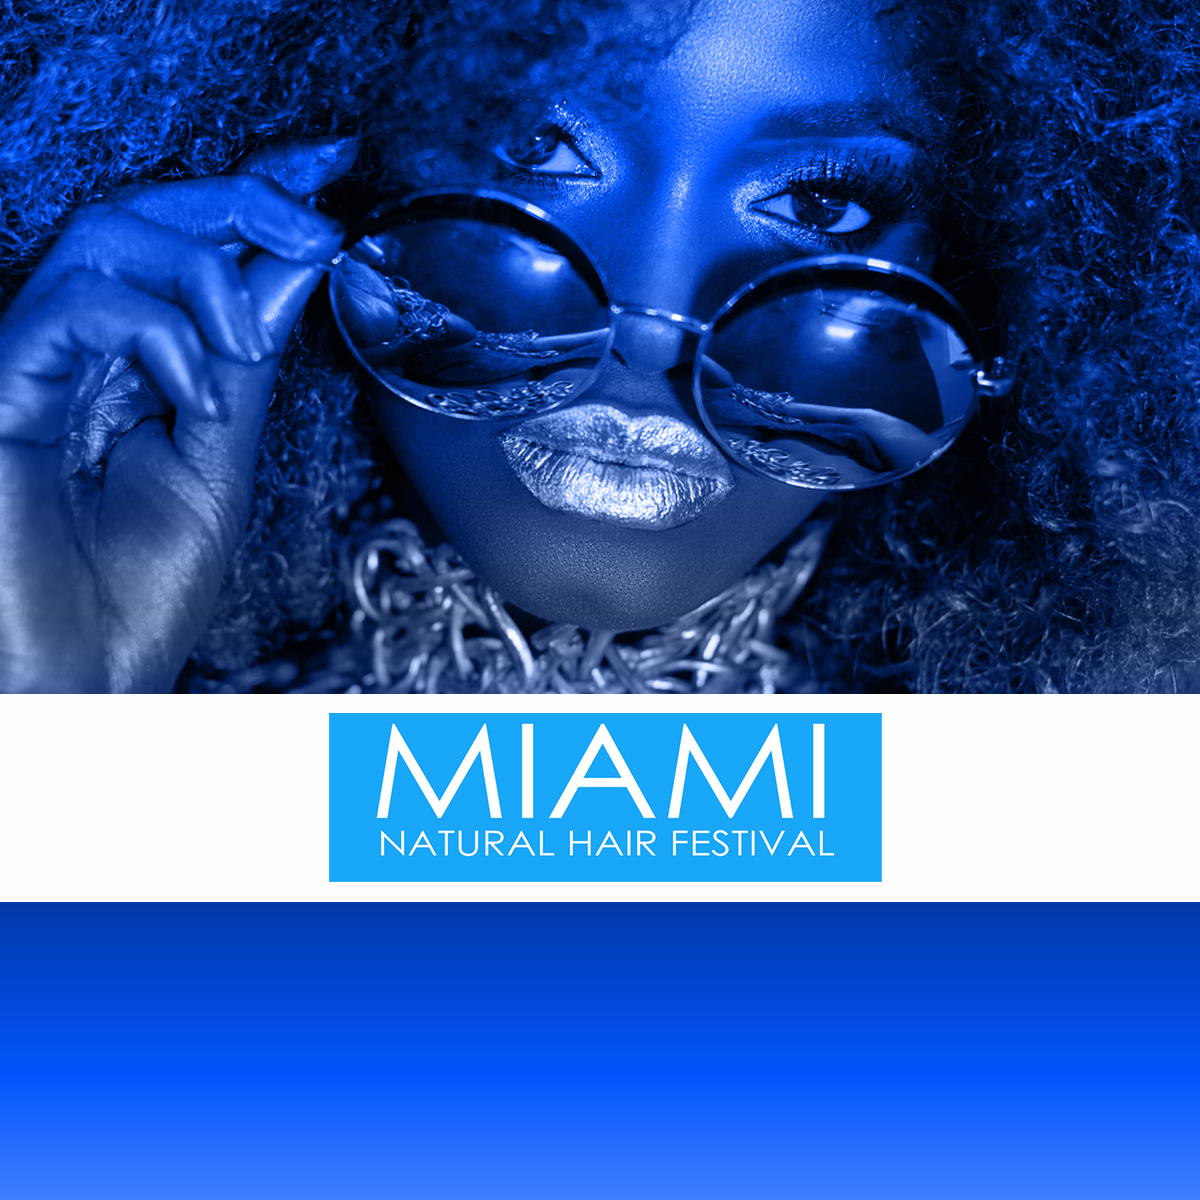 Natural Hair Fest Miami Is Looking For You!